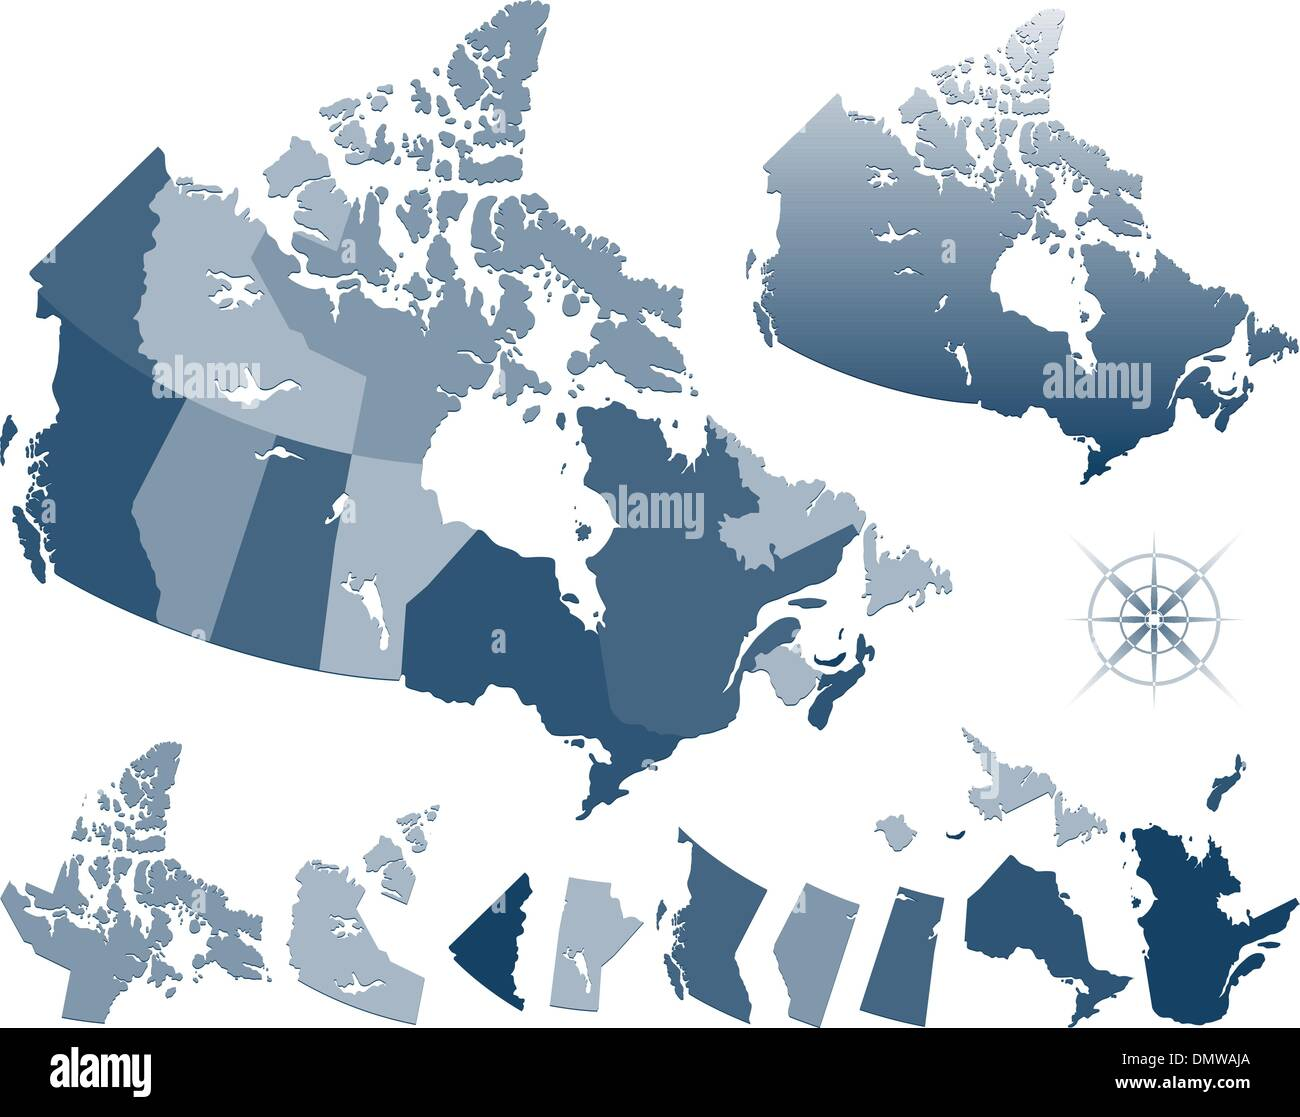 Map of Canada and provinces - Stock Image